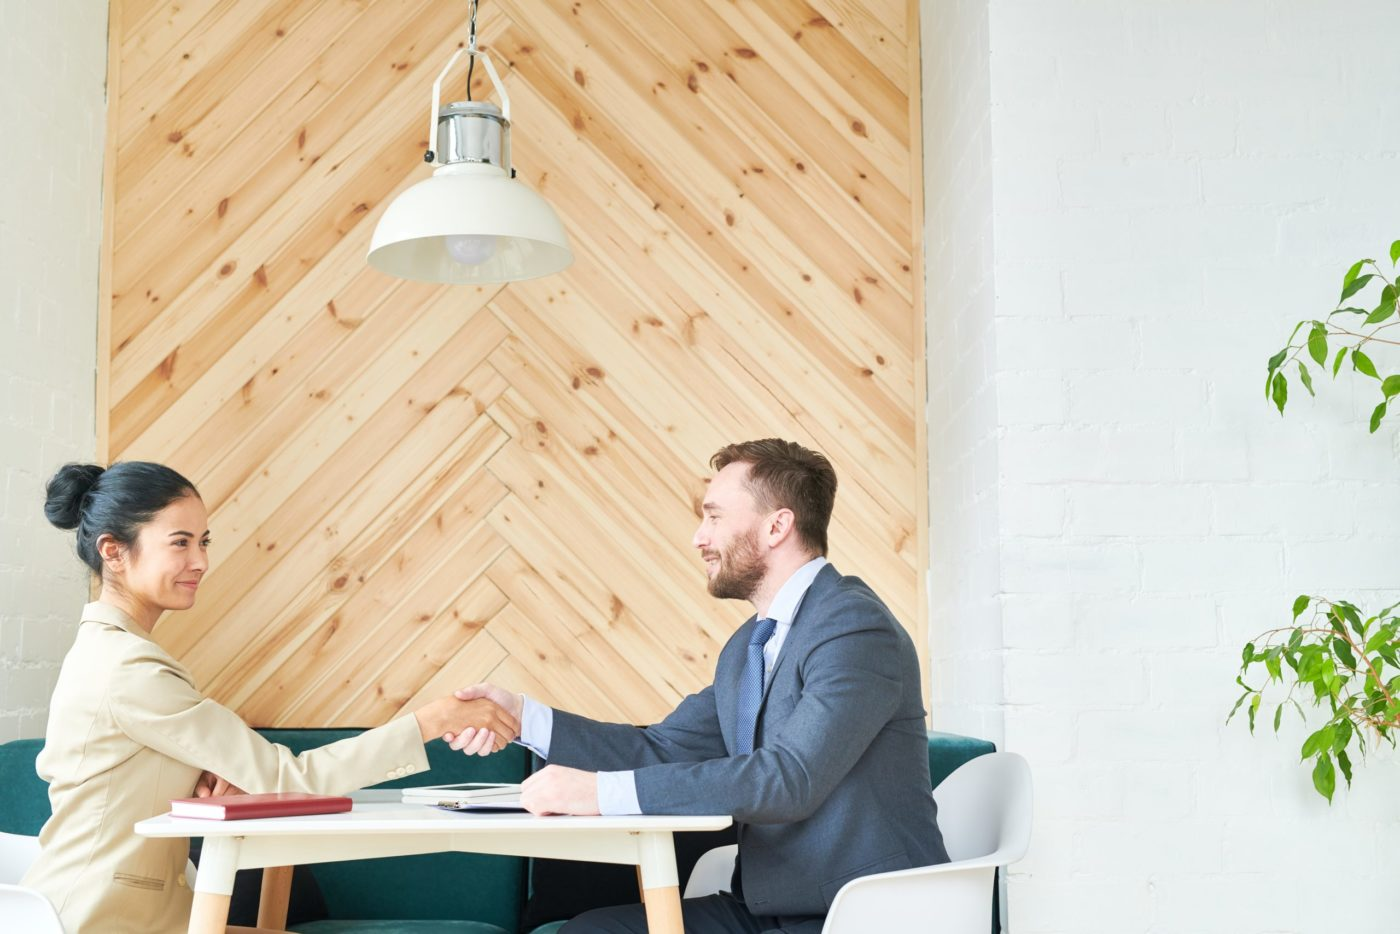 Side view portrait of two successful business people, man and woman, shaking hands across table during meeting in cafe, copy space